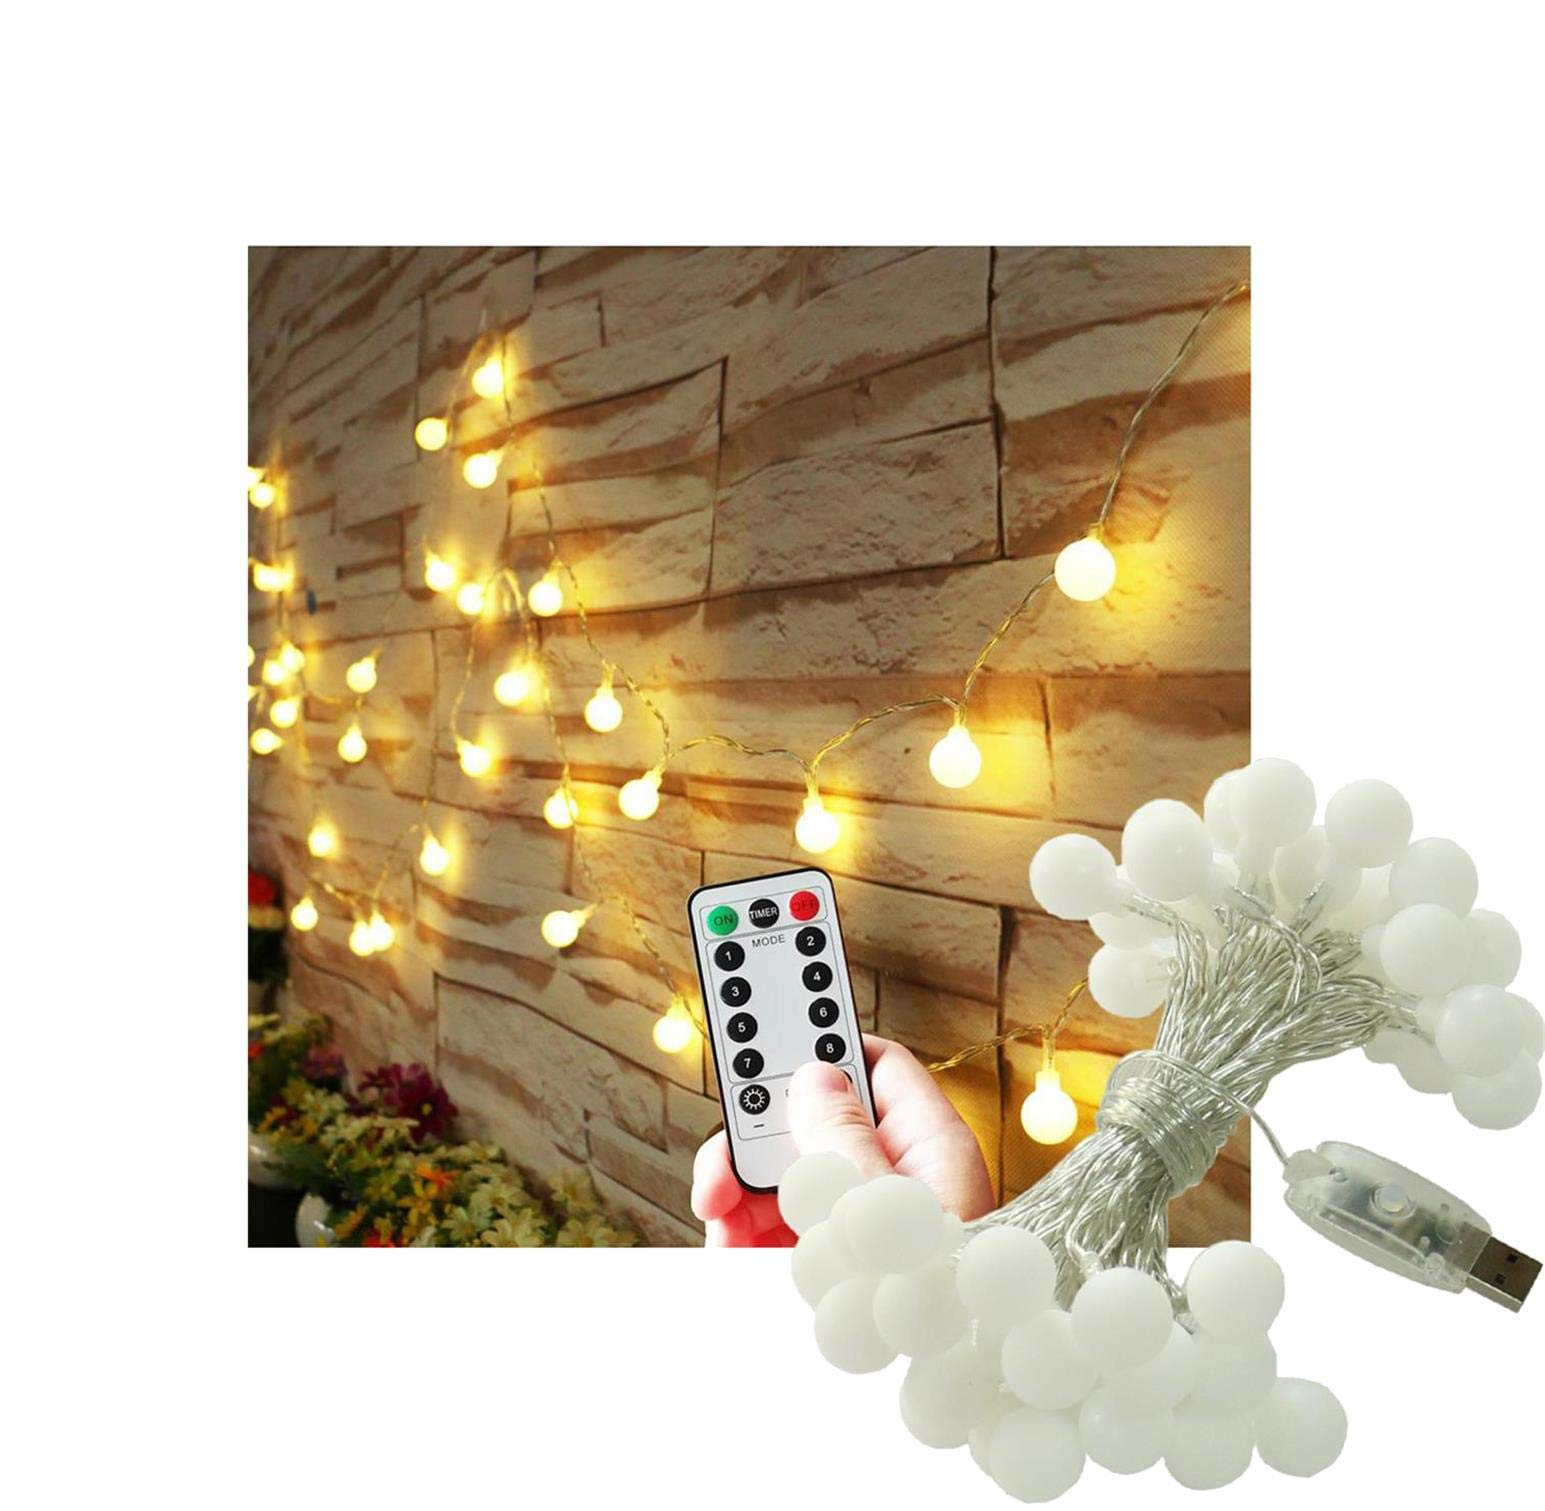 Fairy Globe String Lights USB Operated with Remote Timer Curtain Window 16.4FT/5M Frosted White Ball String Lights for Garden, Tapestry, Wall, Wedding, Patio, Indoor, Outdoor (Dimmable, Warm White)